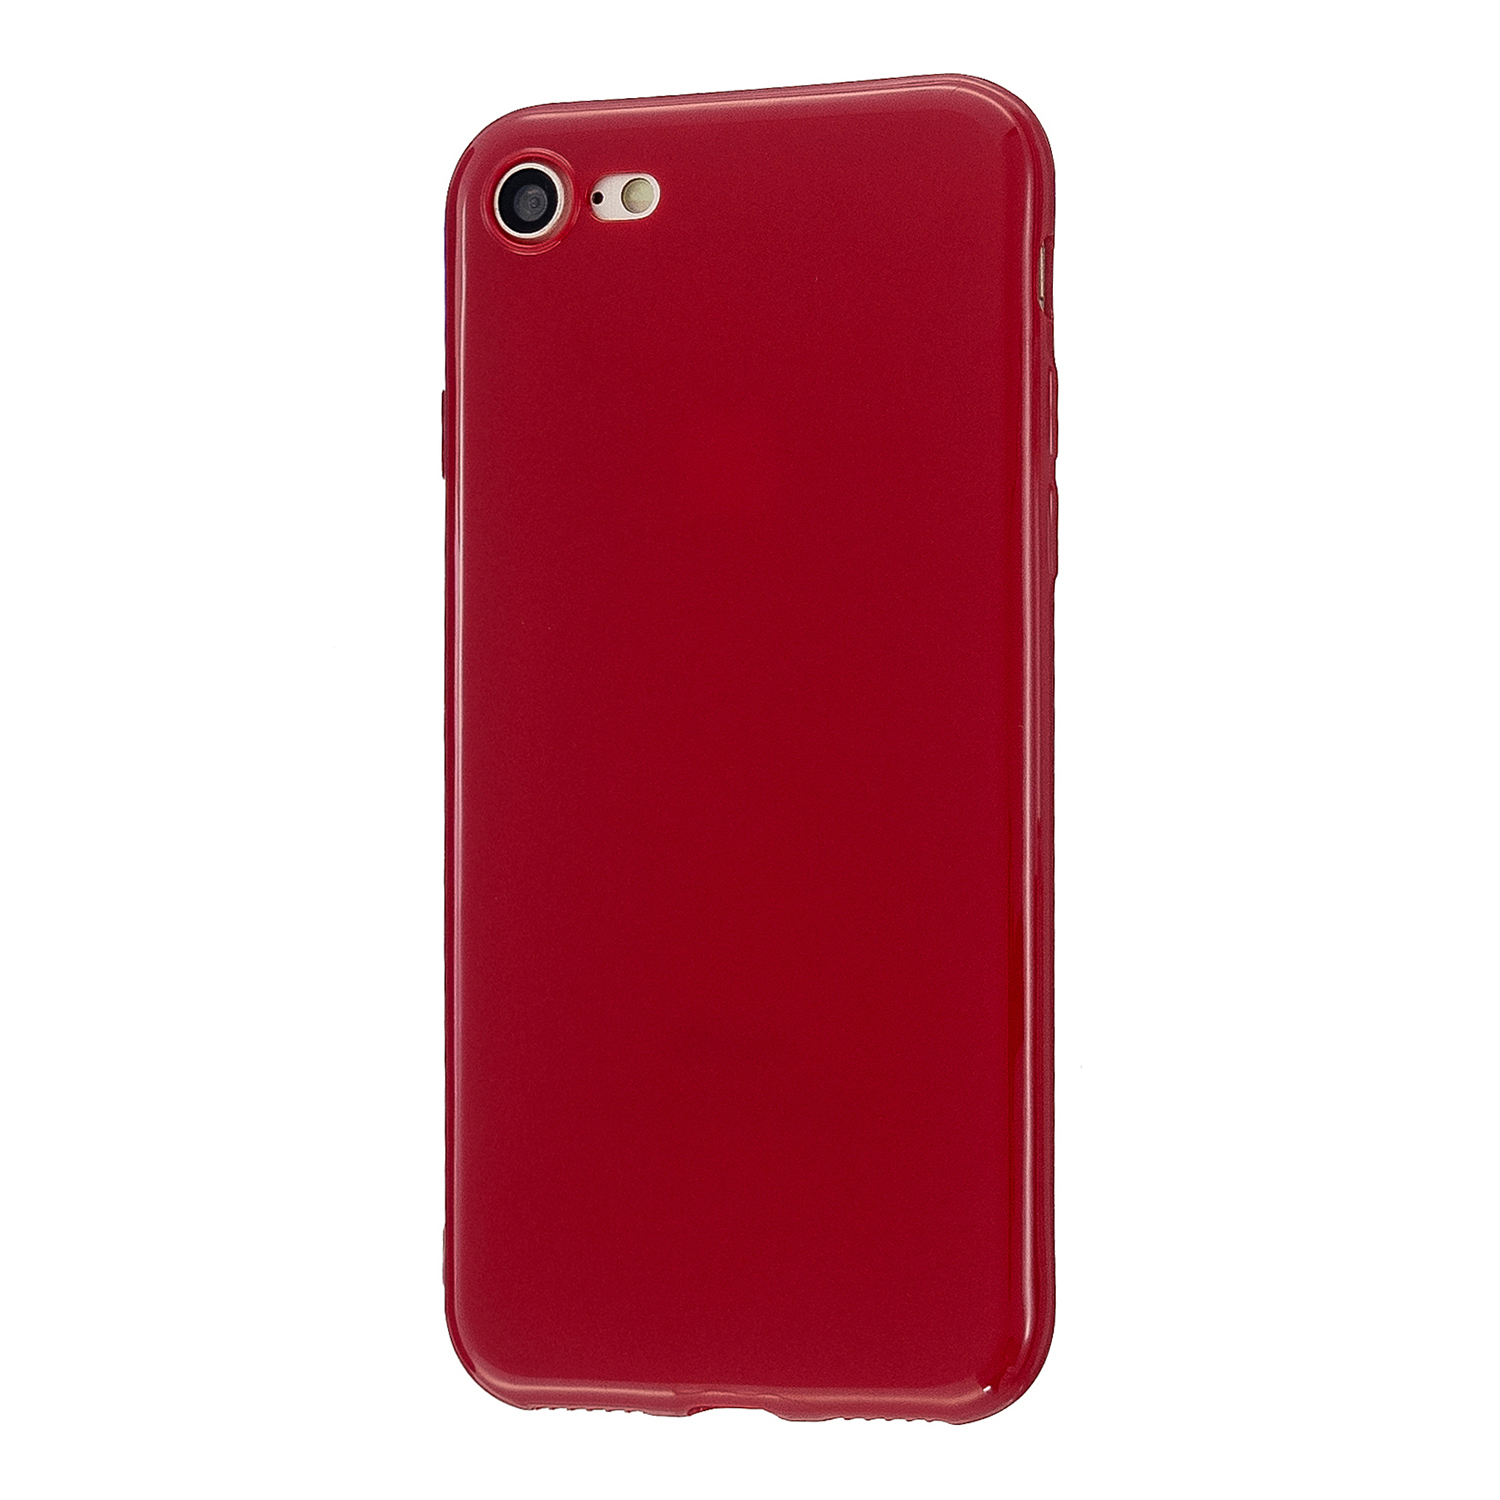 For iPhone 5/5S/SE/6/6S/6 Plus/6S Plus/7/8/7 Plus/8 Plus Cellphone Cover Soft TPU Bumper Protector Phone Shell Rose red